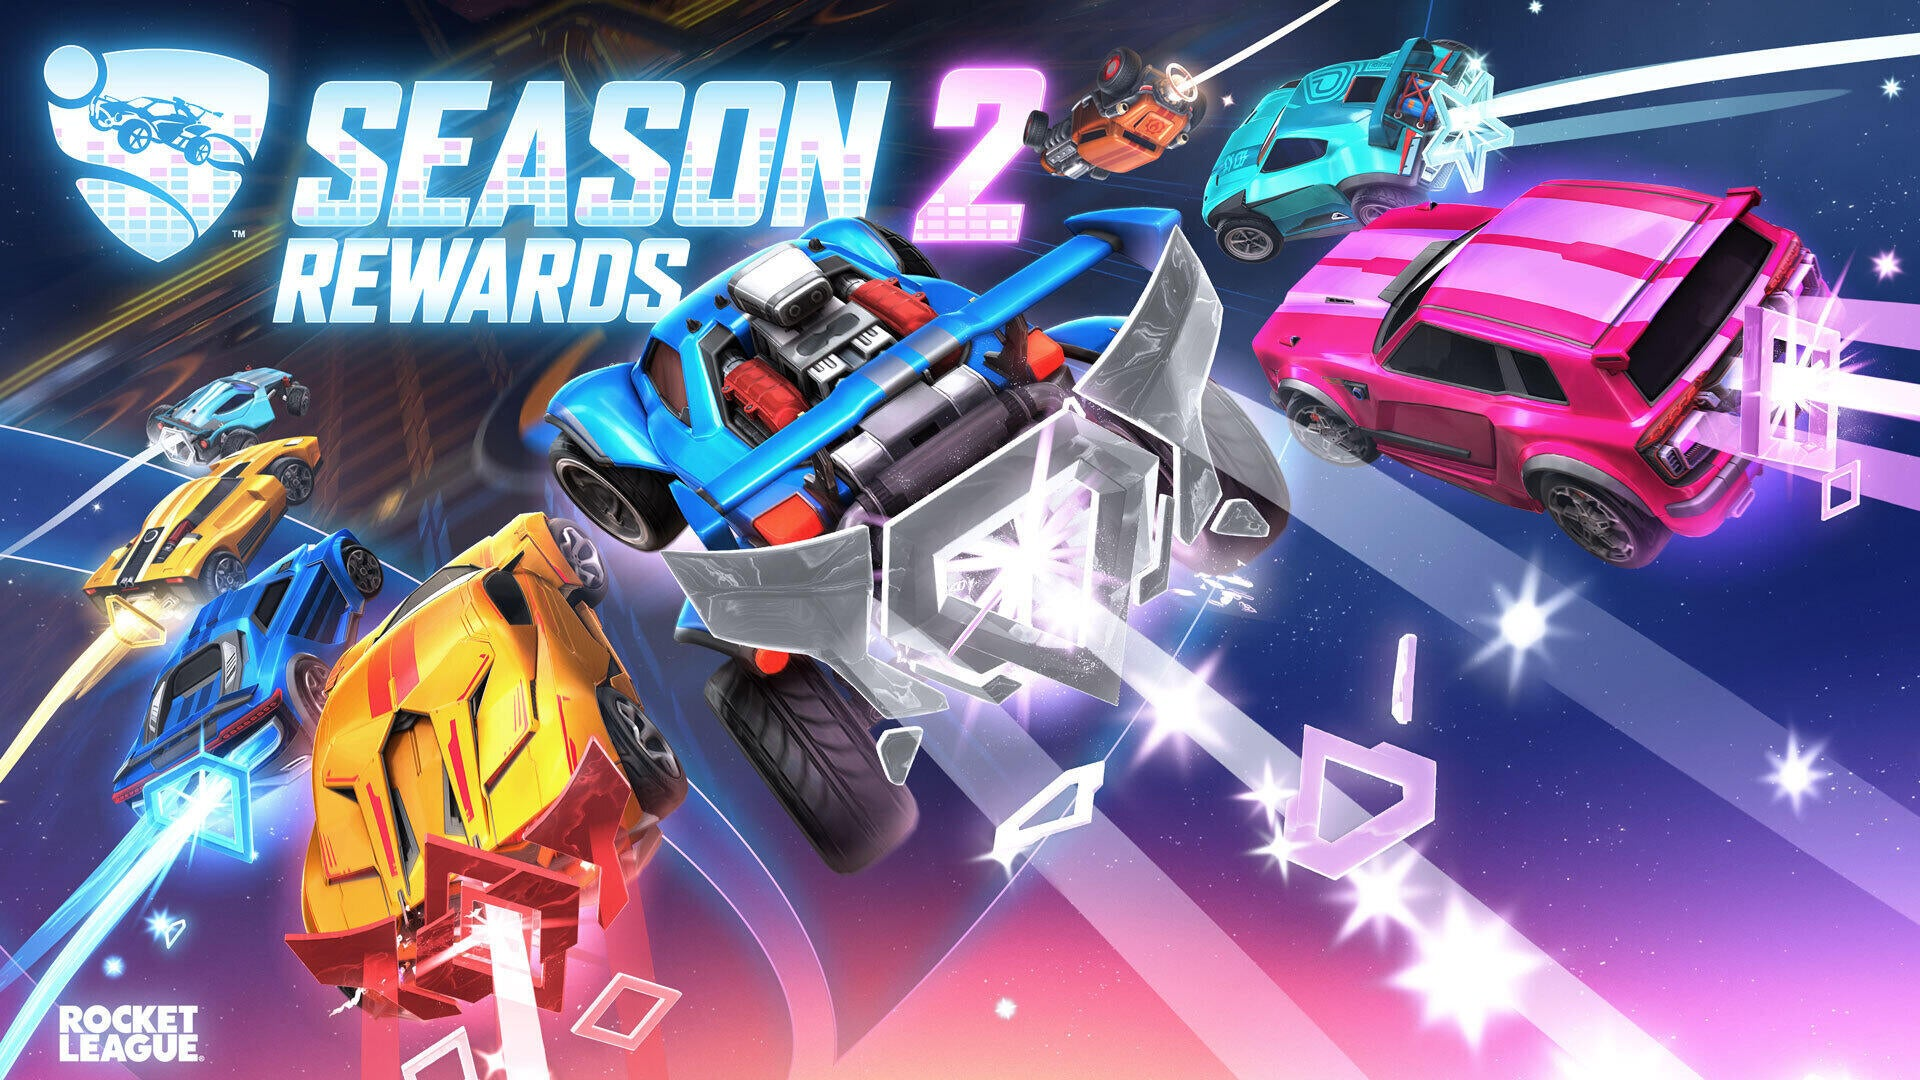 Season 2 Extended + Competitive Rewards Image